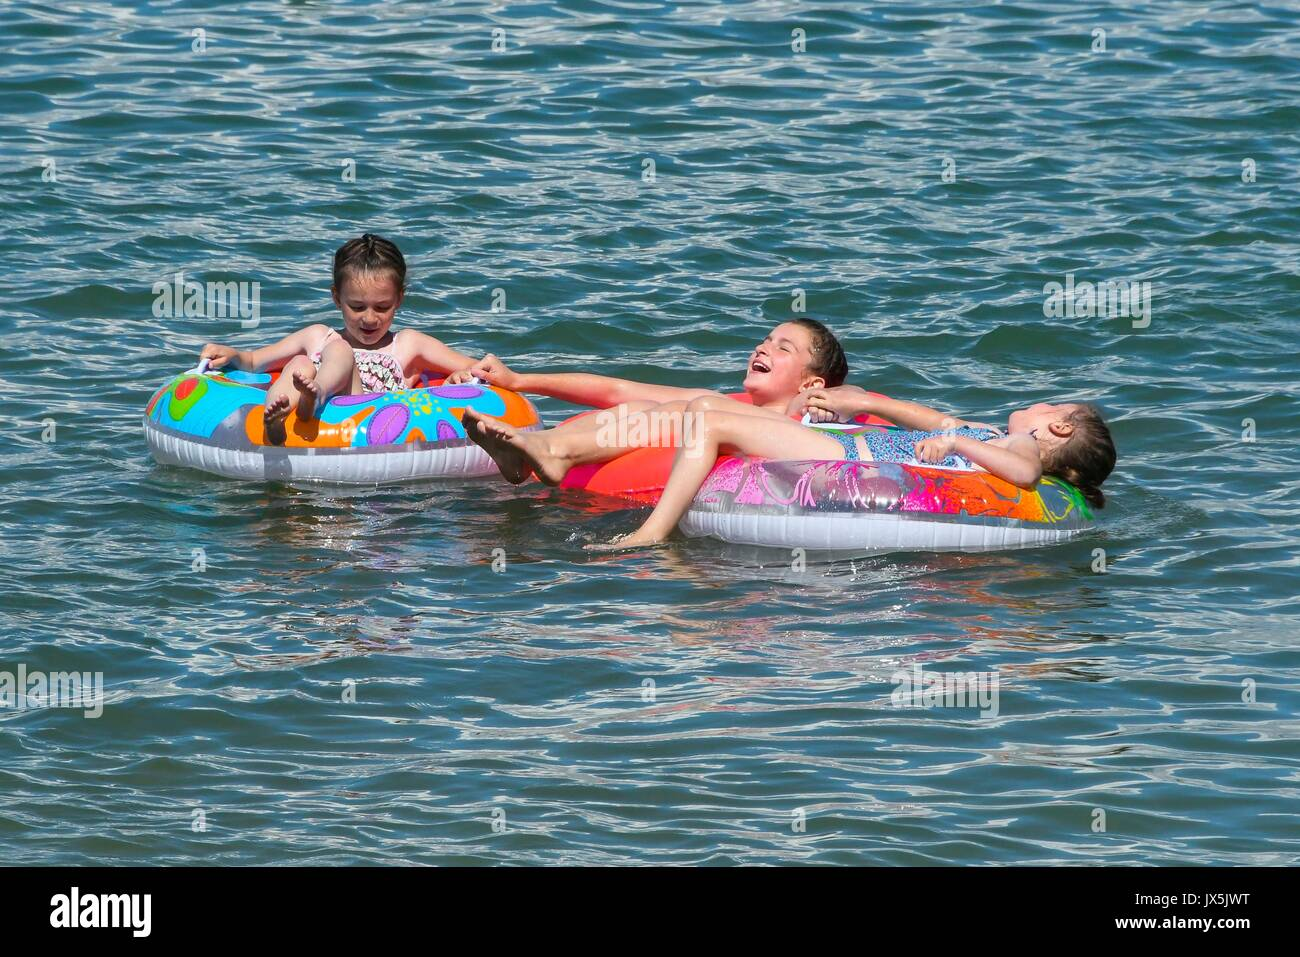 Rings under water stock photos rings under water stock - Swimming pools in weymouth dorset ...